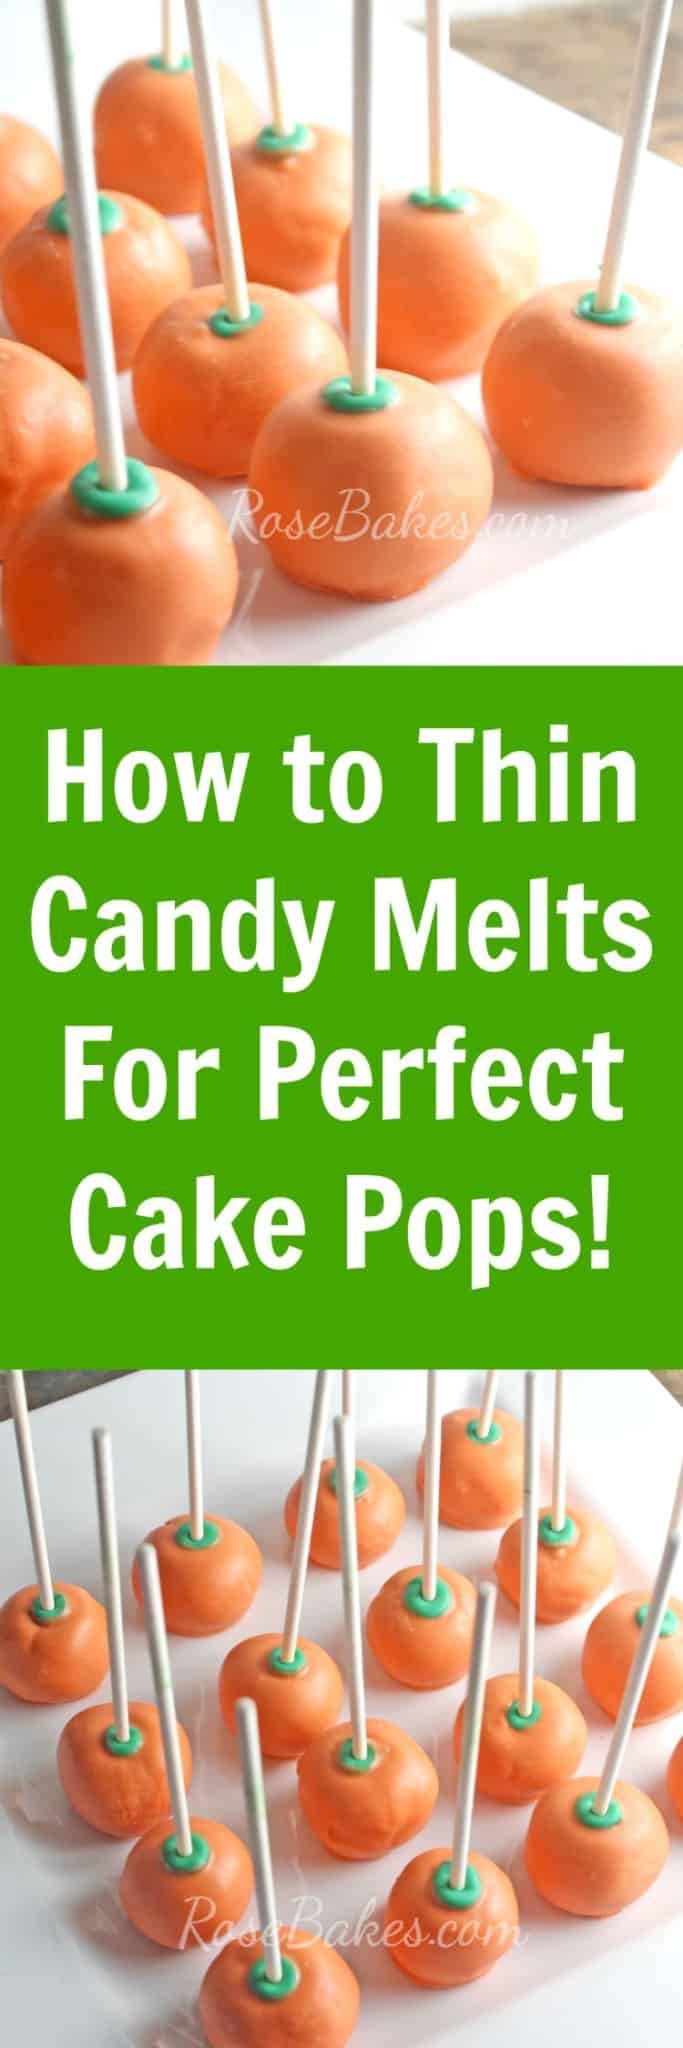 How To Thin Wilton Candy Melts For Perfect Cake Pops Rose Bakes